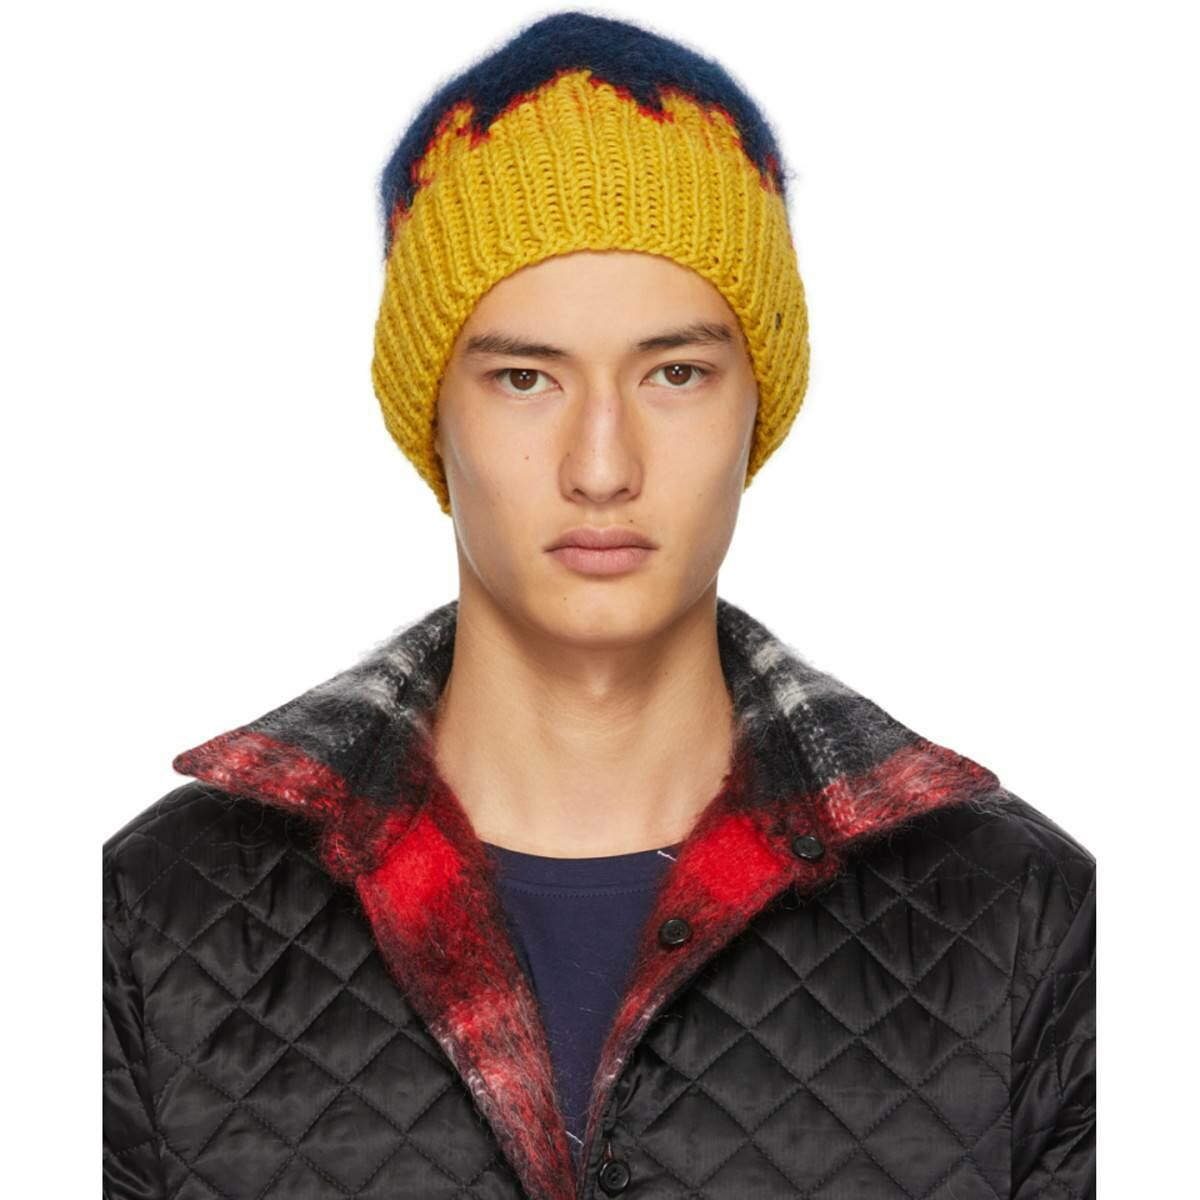 Bless Navy and Yellow Hand-Knit Flame Tongue Beanie Ssense USA MEN Men ACCESSORIES Mens HATS